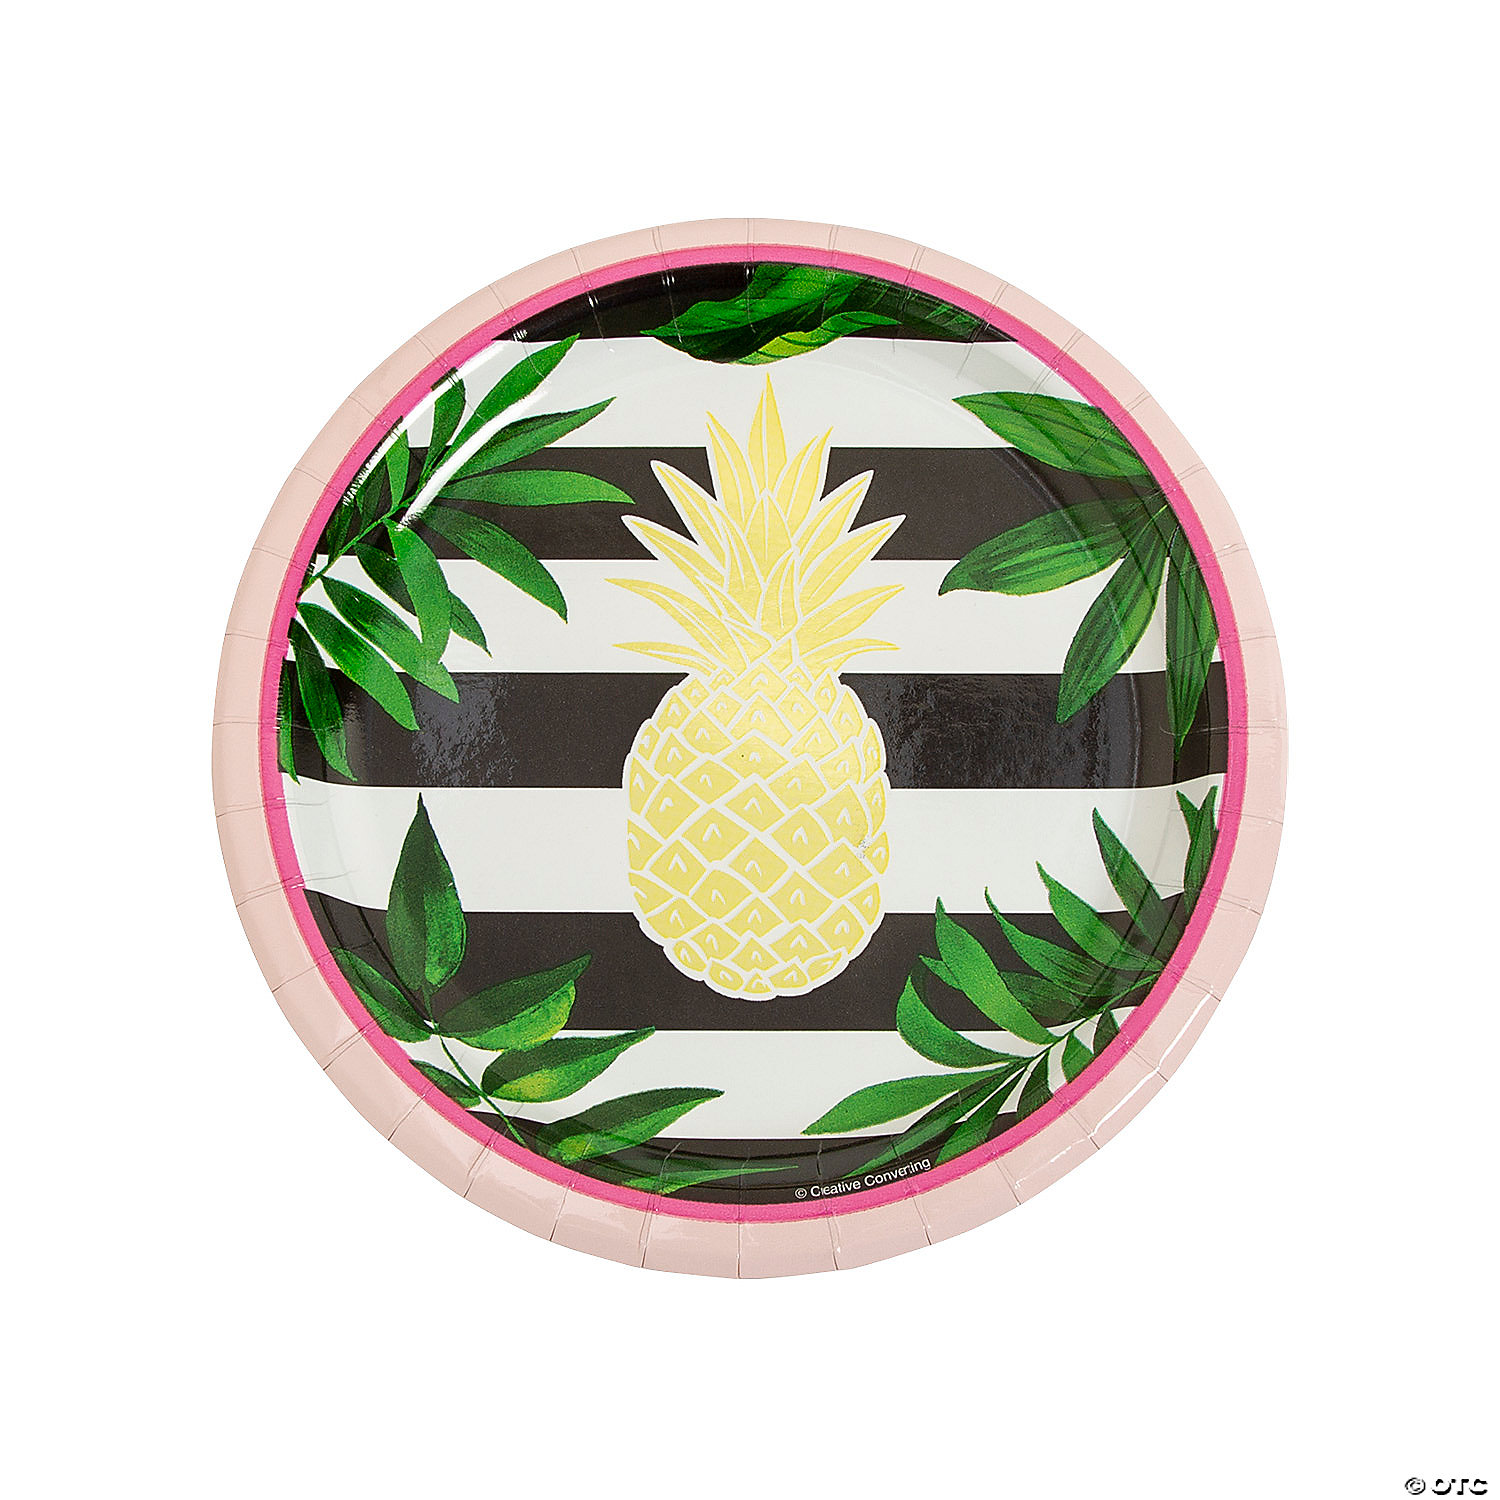 Gold Party Plates Pineapple Party Supplies Pineapple Party Plates Fiesta Party Pineapple Paper Plates Pineapple Party Decor Luau Party